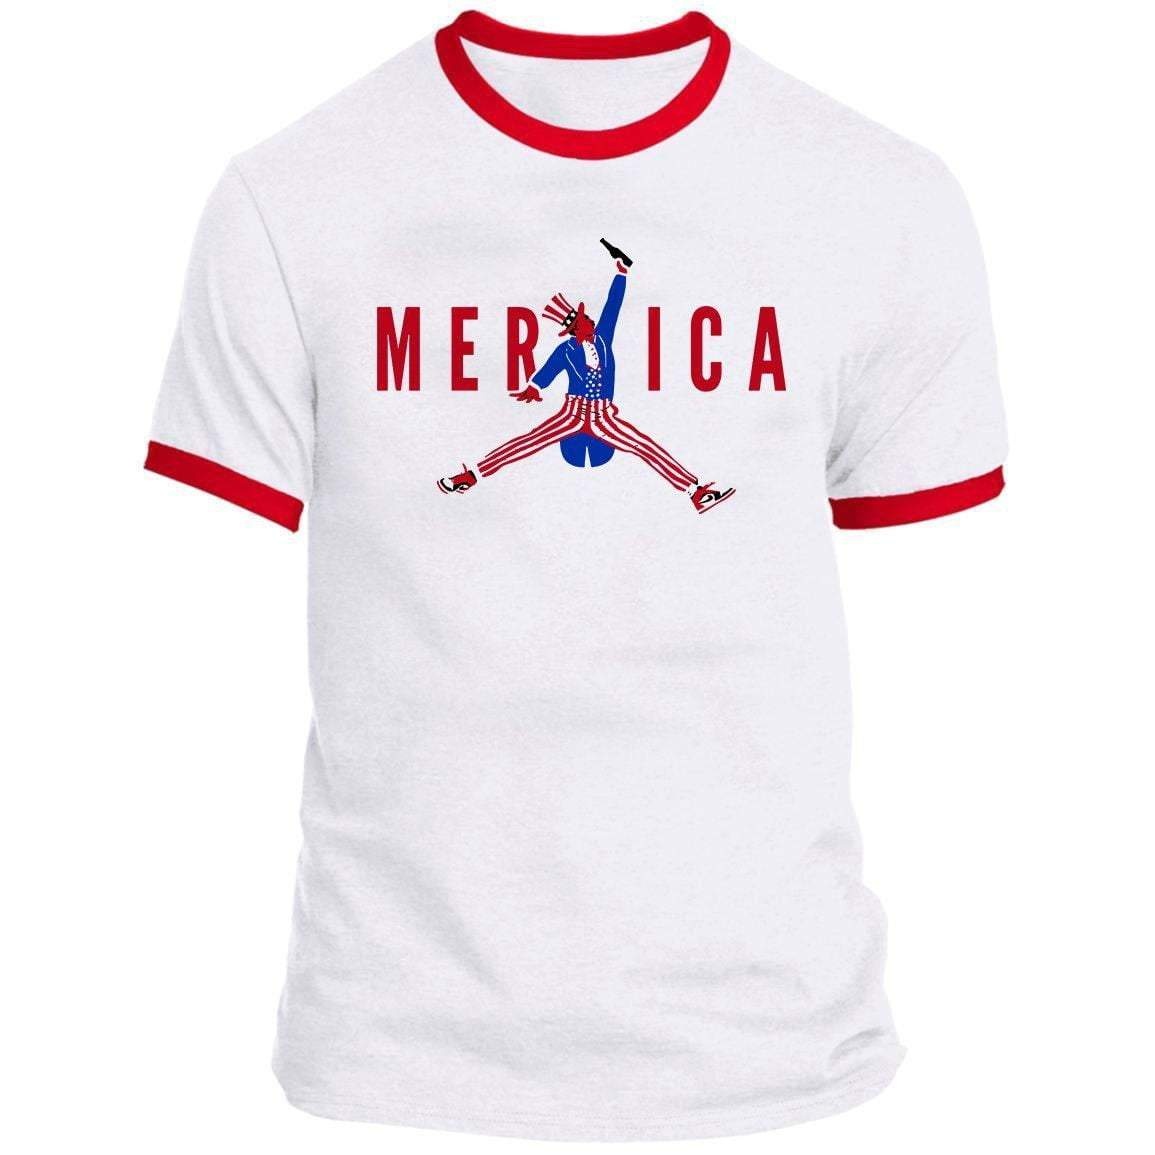 d13933df8 Funny Ringer Tees, American, Patriotic Shirts | 21 Threads